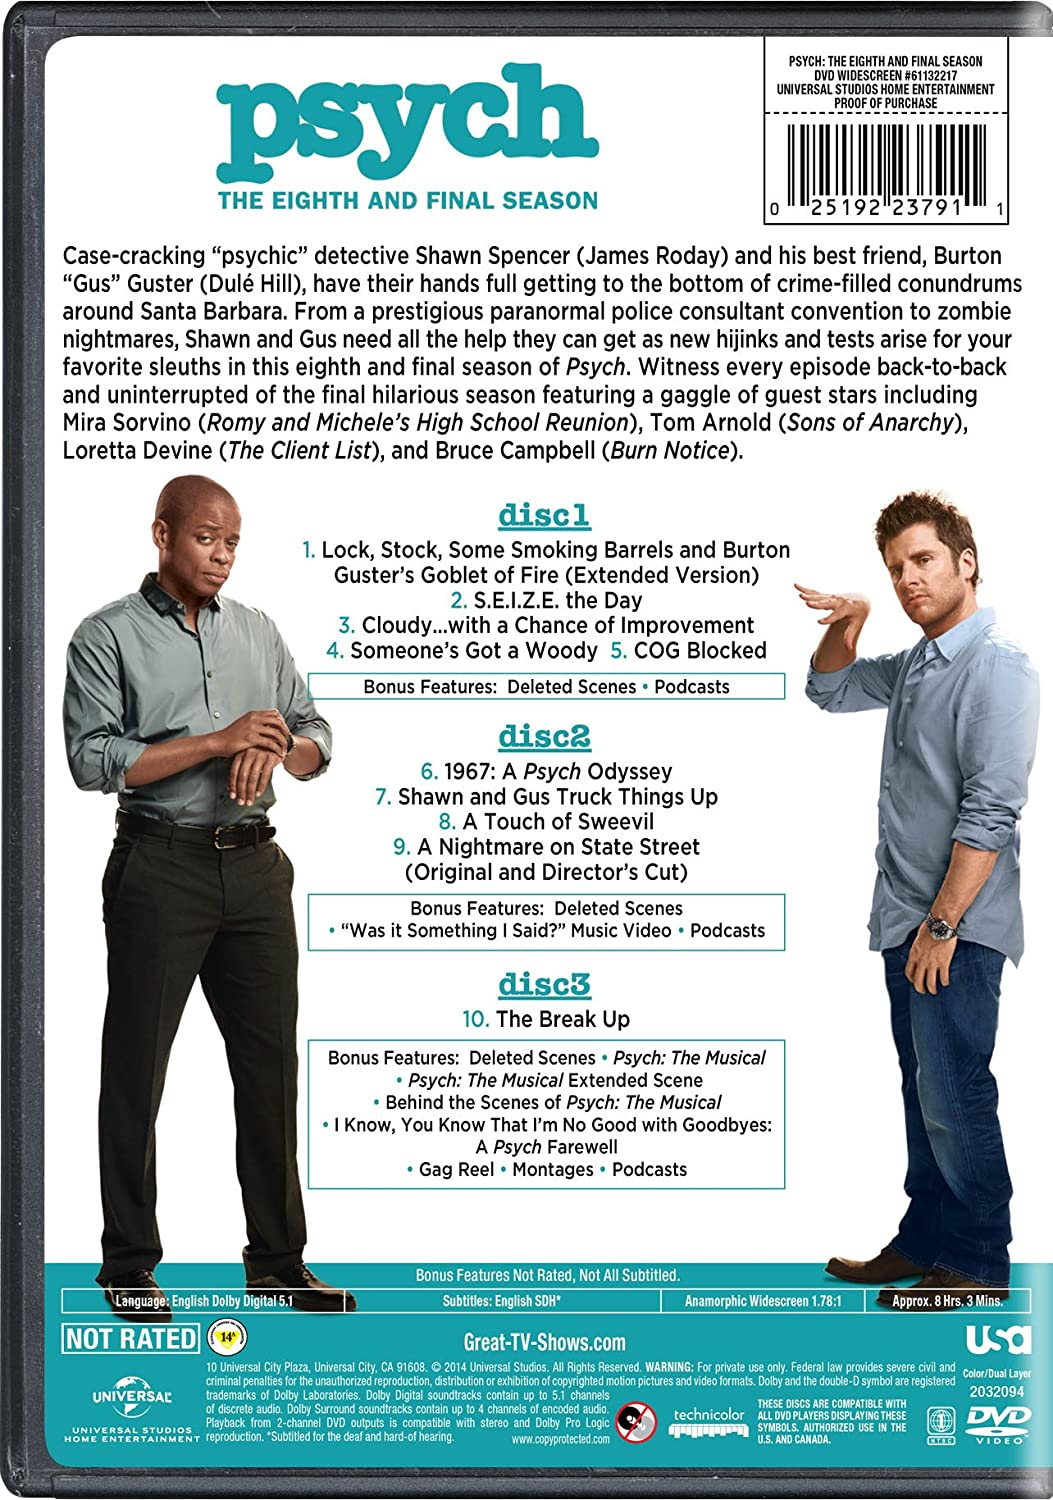 Amazon.com: Psych: The Eighth and Final Season: James Roday, Dule ...